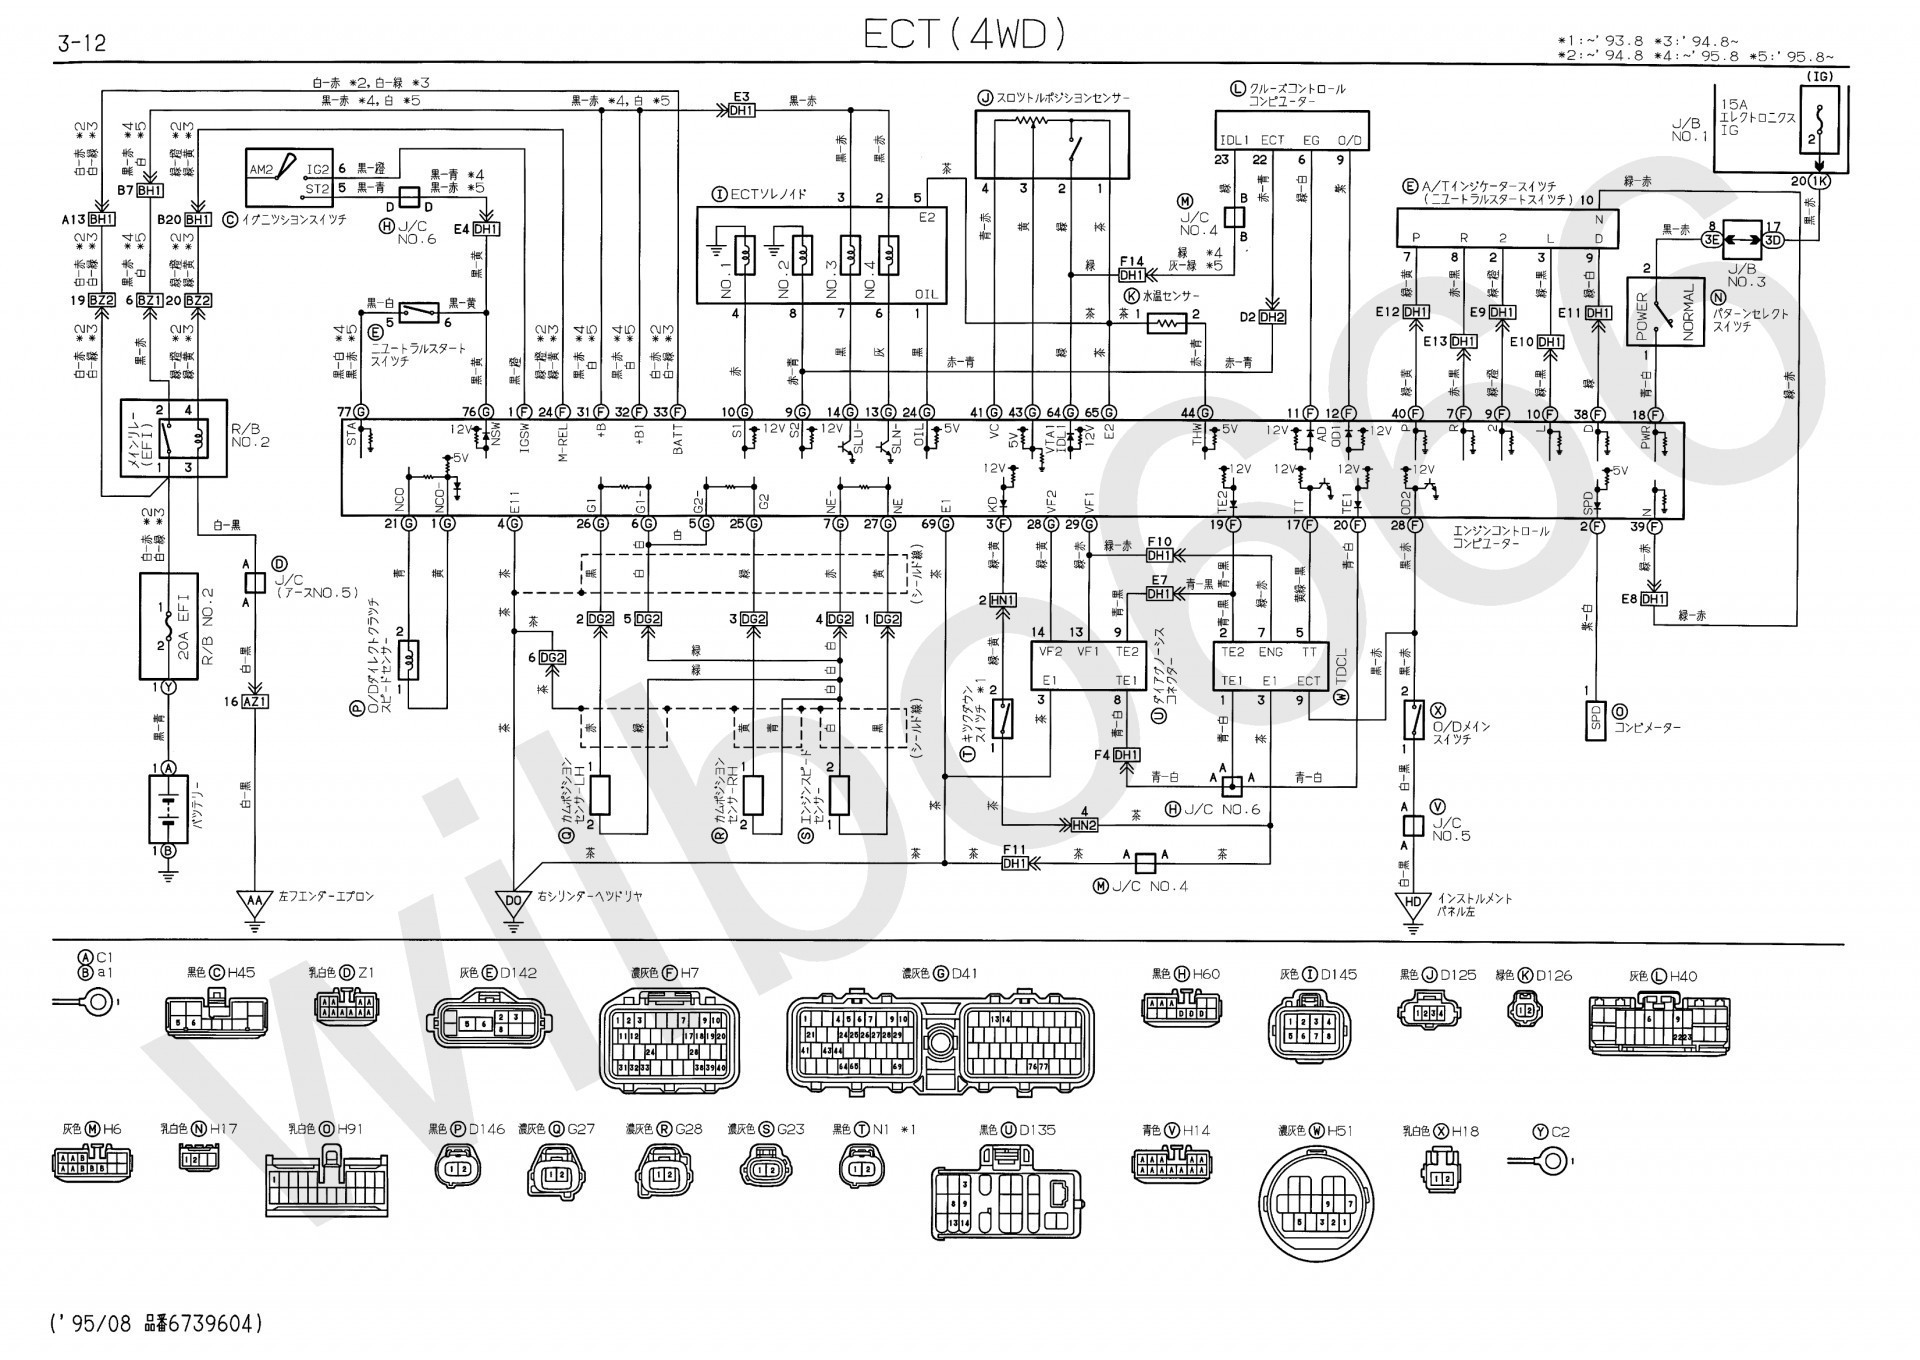 Diagram Of Engine Parts Bmw Engine Diagram New Electrical Floor Plan 2004 2010 Bmw X3 E83 3 Of Diagram Of Engine Parts